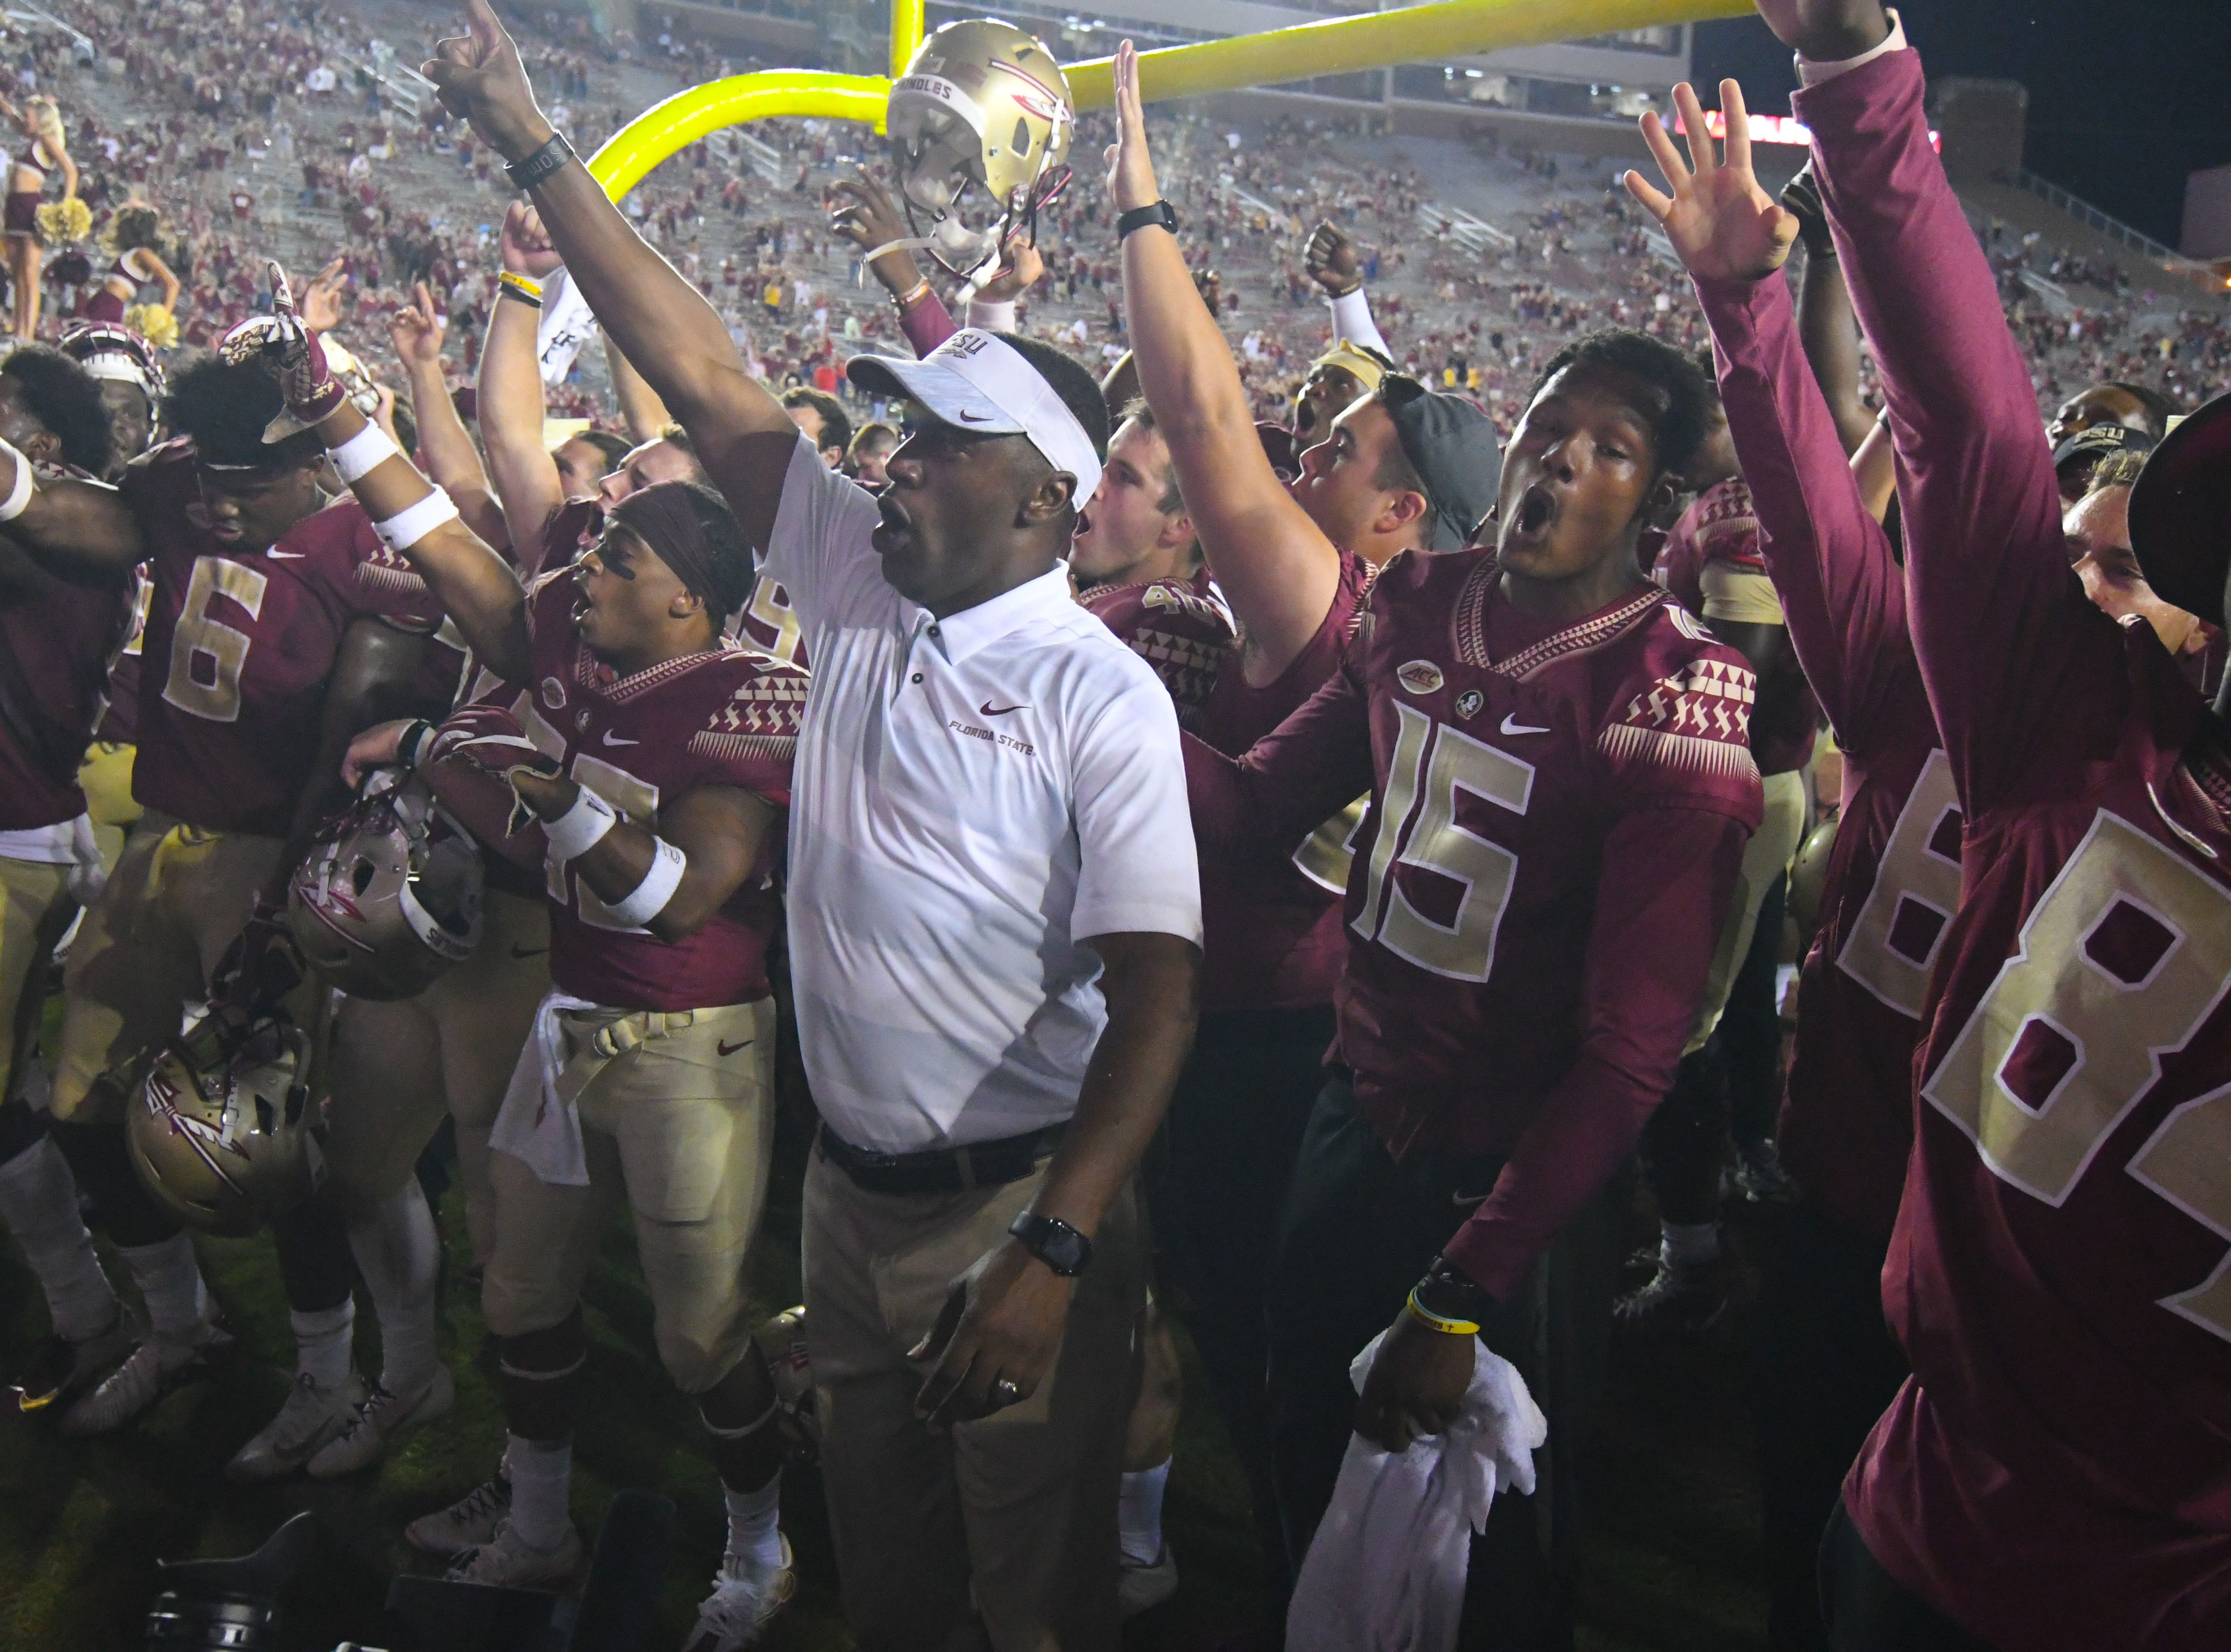 FSU head coach Willie Taggart celebrating his first career win at FSU over Samford by singing the FSU fight song on Saturday night at Doak Campbell Stadium.